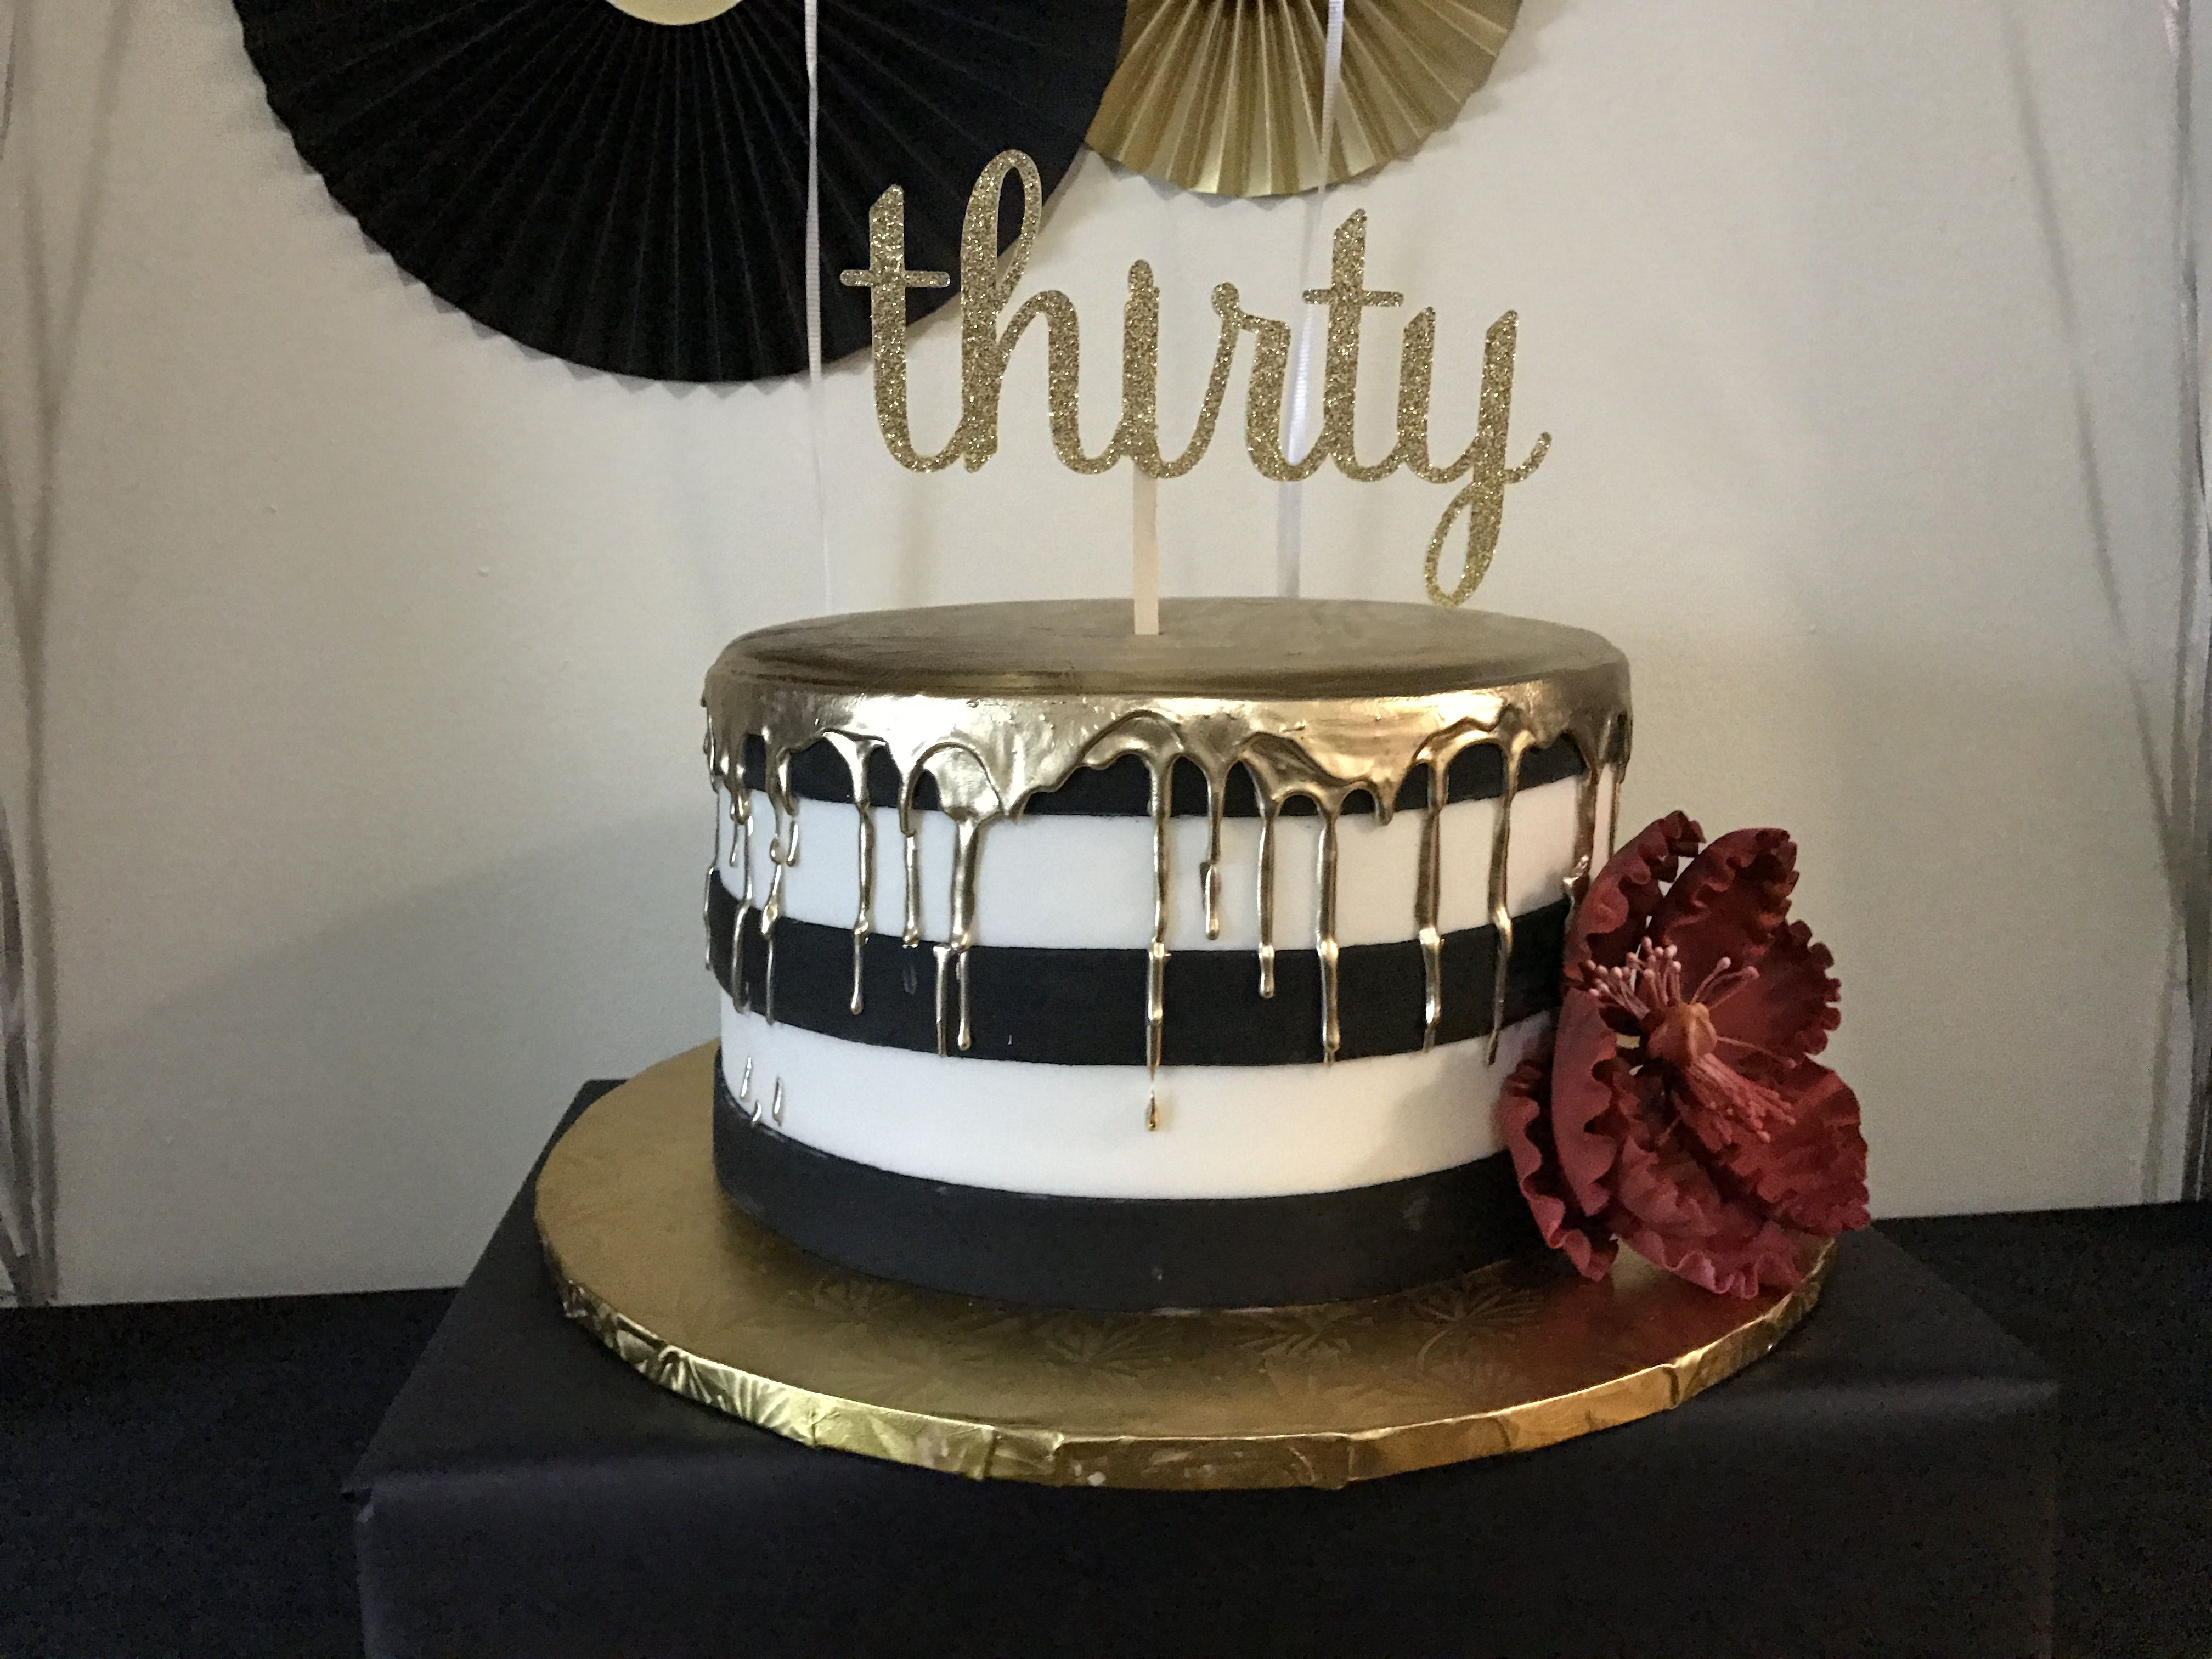 Best ideas about 30th Birthday Cake Ideas . Save or Pin 30th Birthday Cake Black white and gold Now.